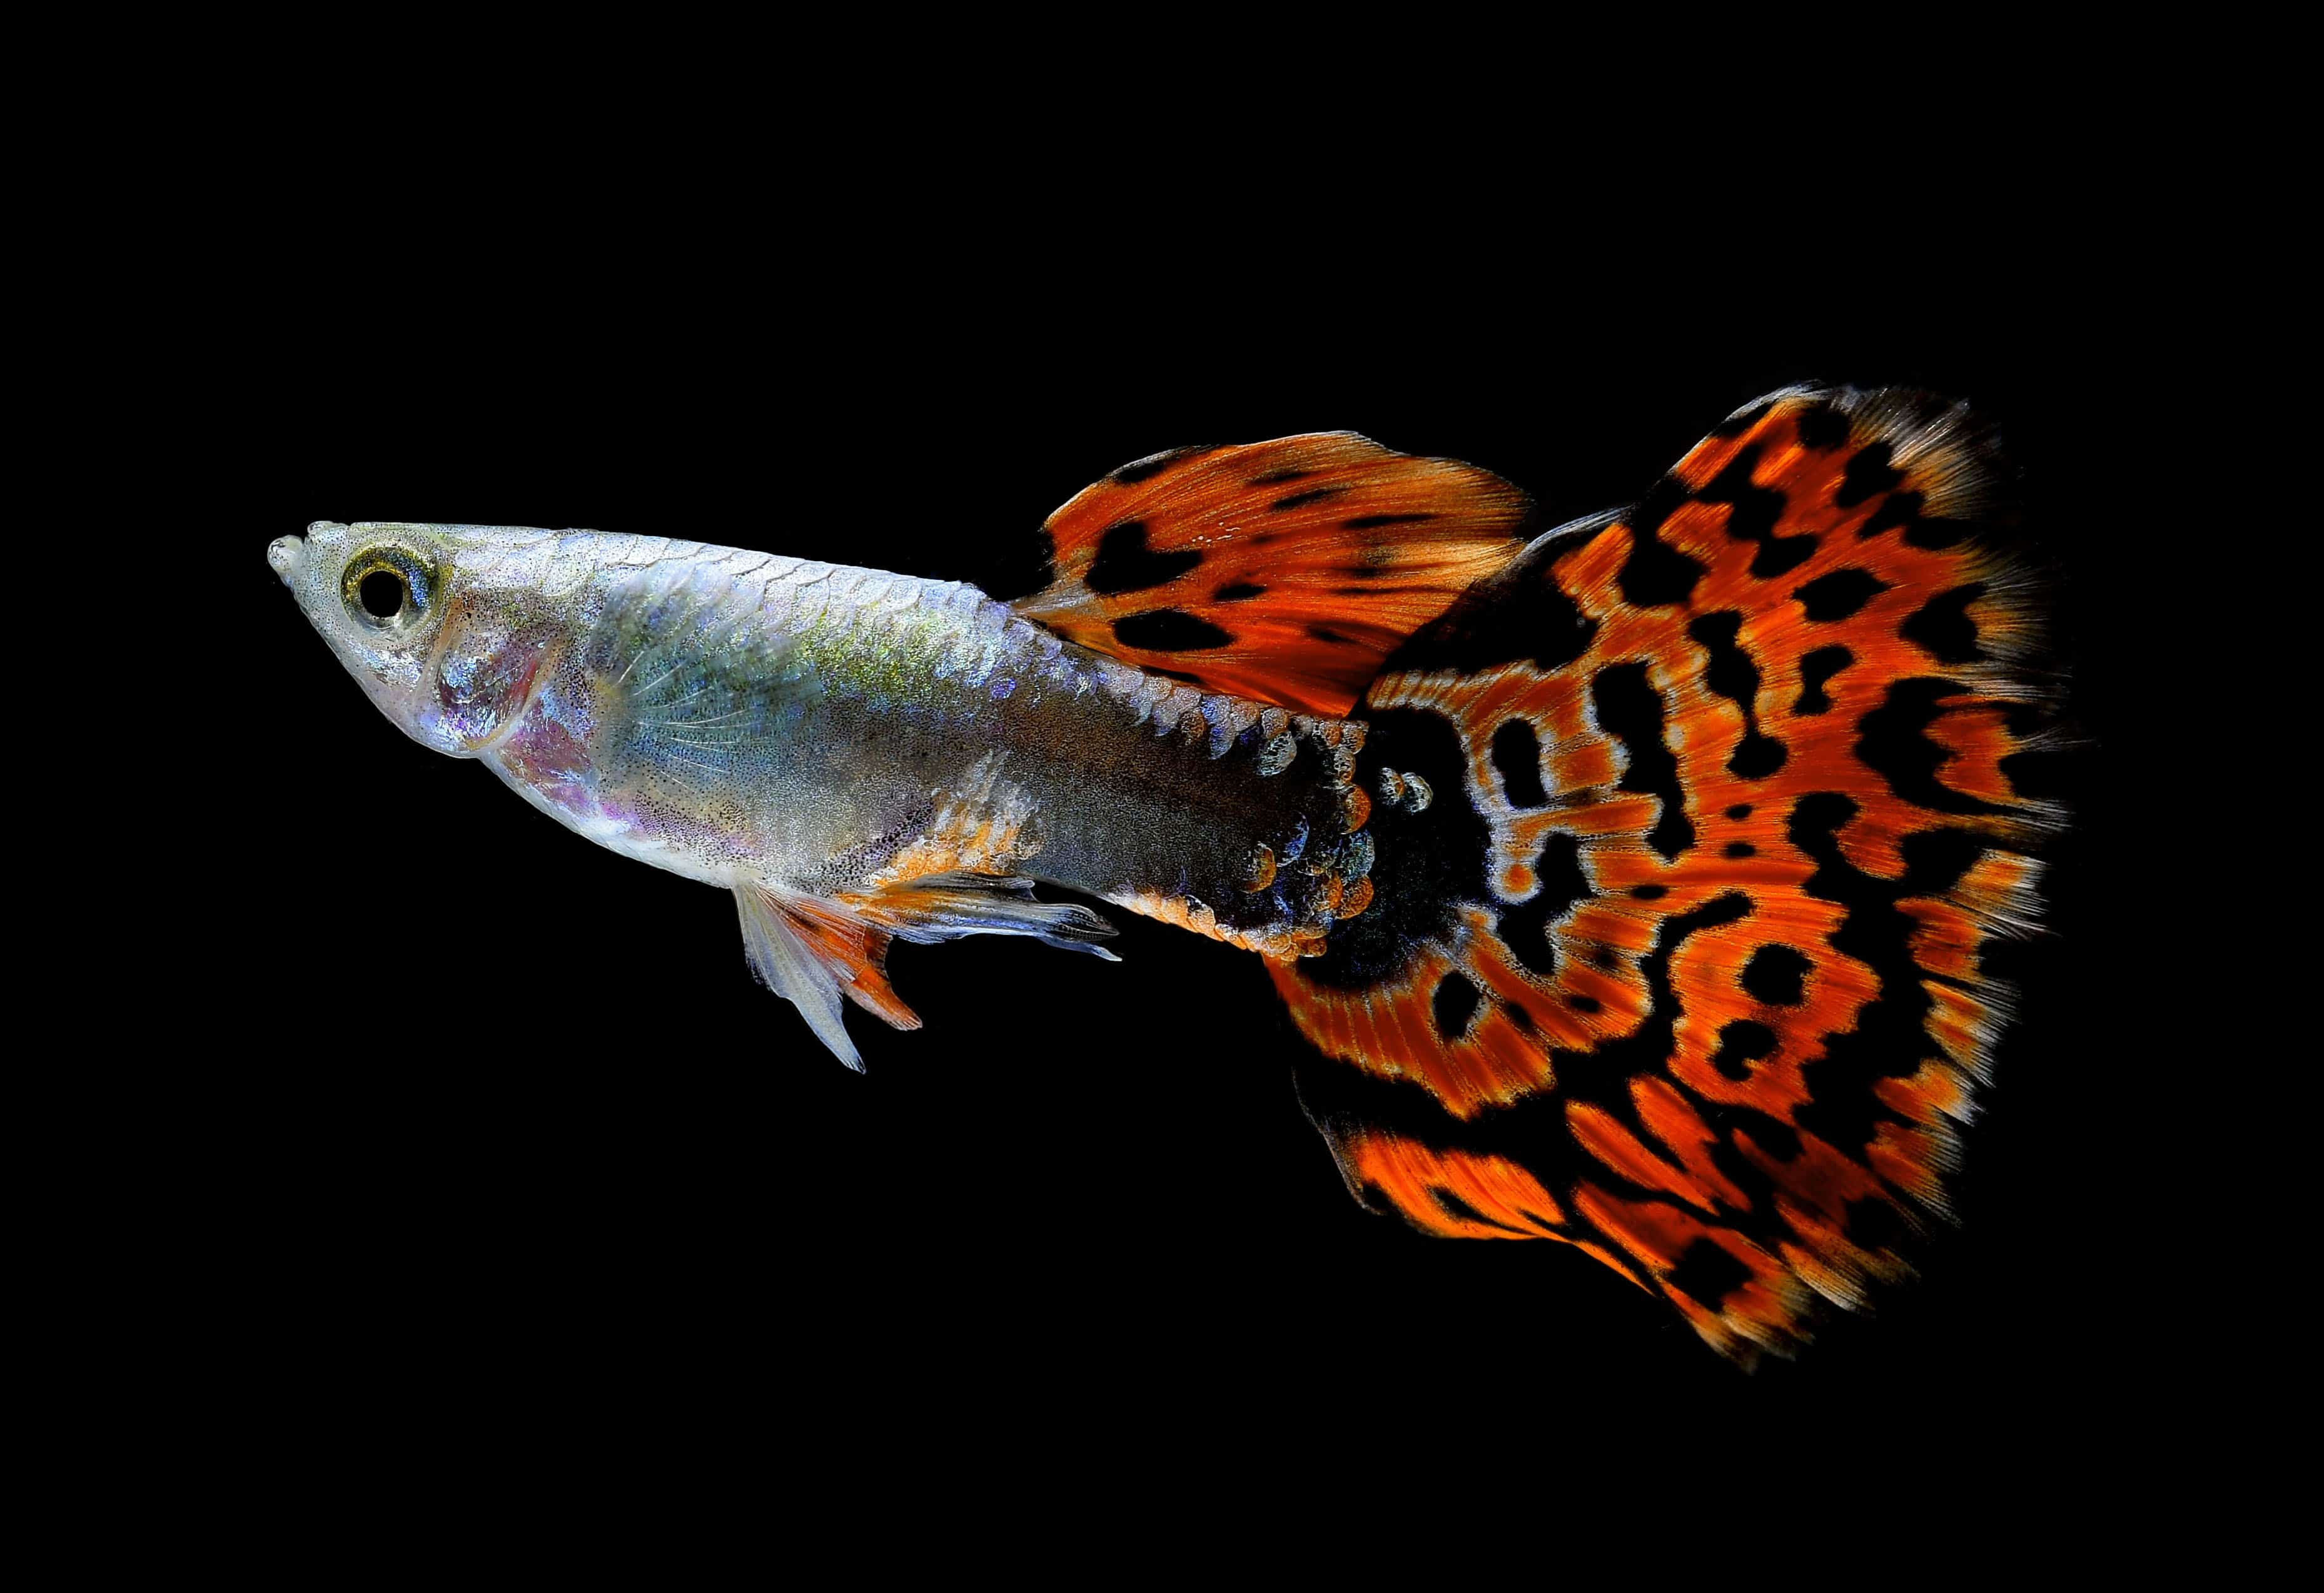 A guppy with bright red, leopard spotted type tail, isolated on black